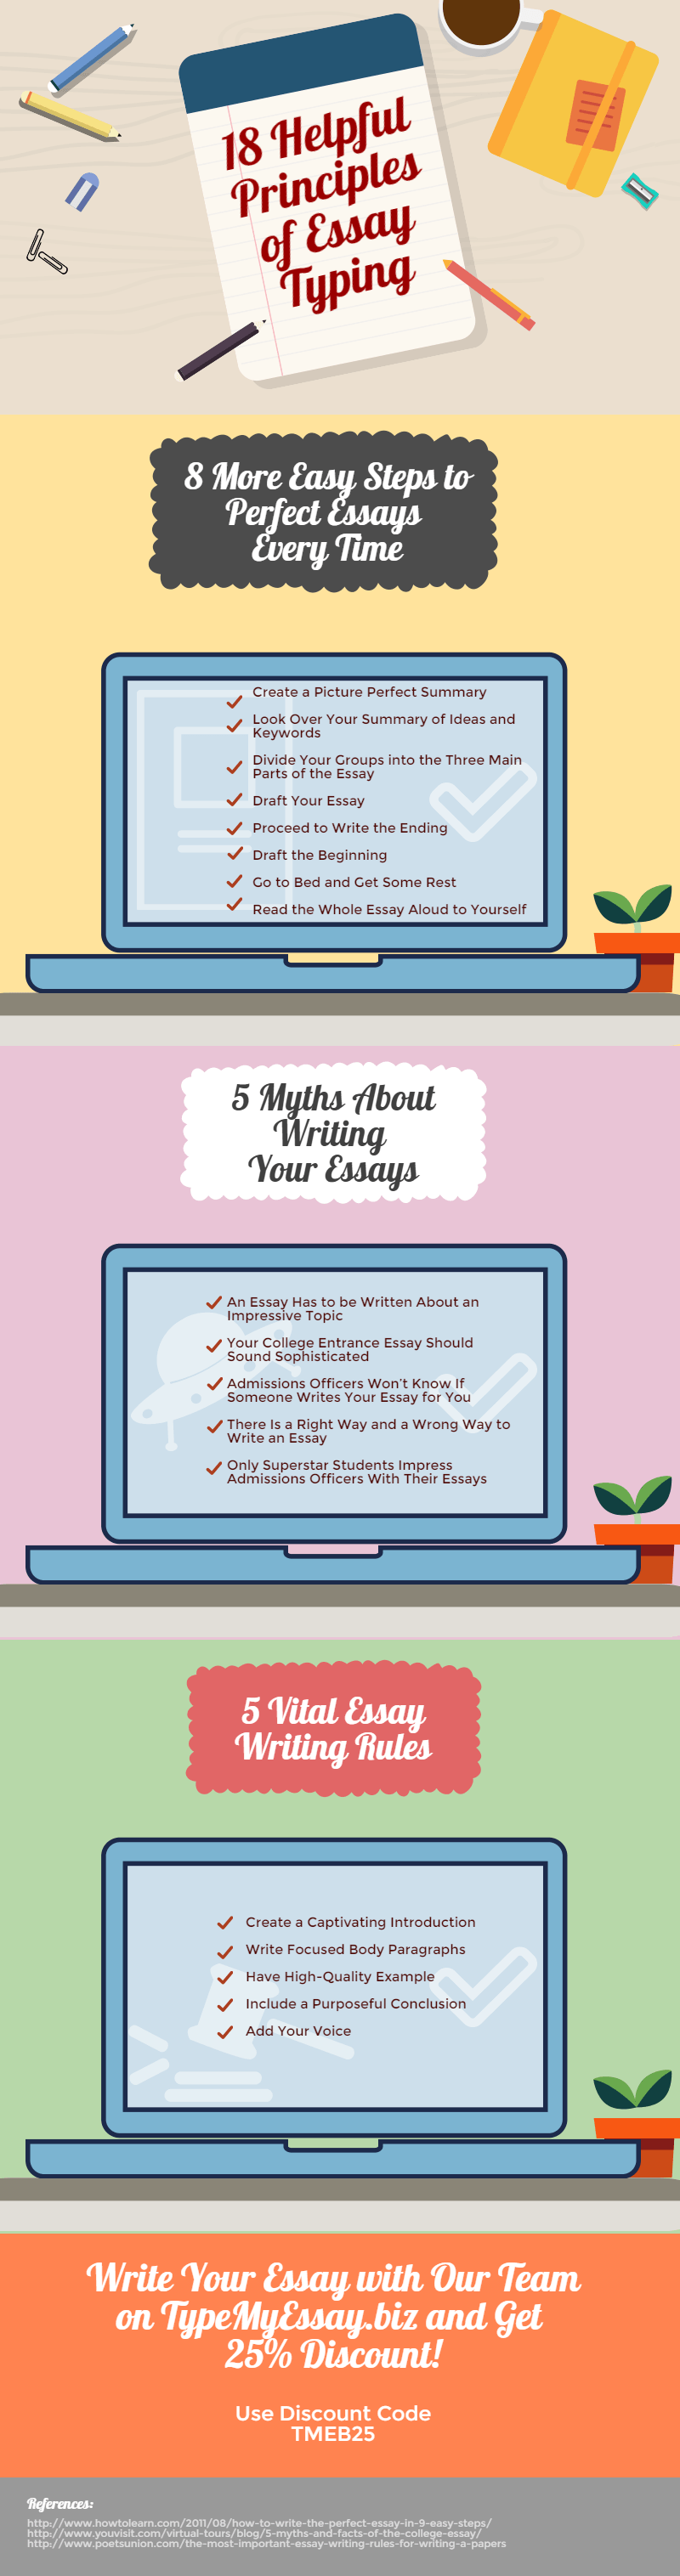 essay it helpful principles of essay writing infographic e  helpful principles of essay writing infographic e learning 18 helpful principles of essay writing infographic